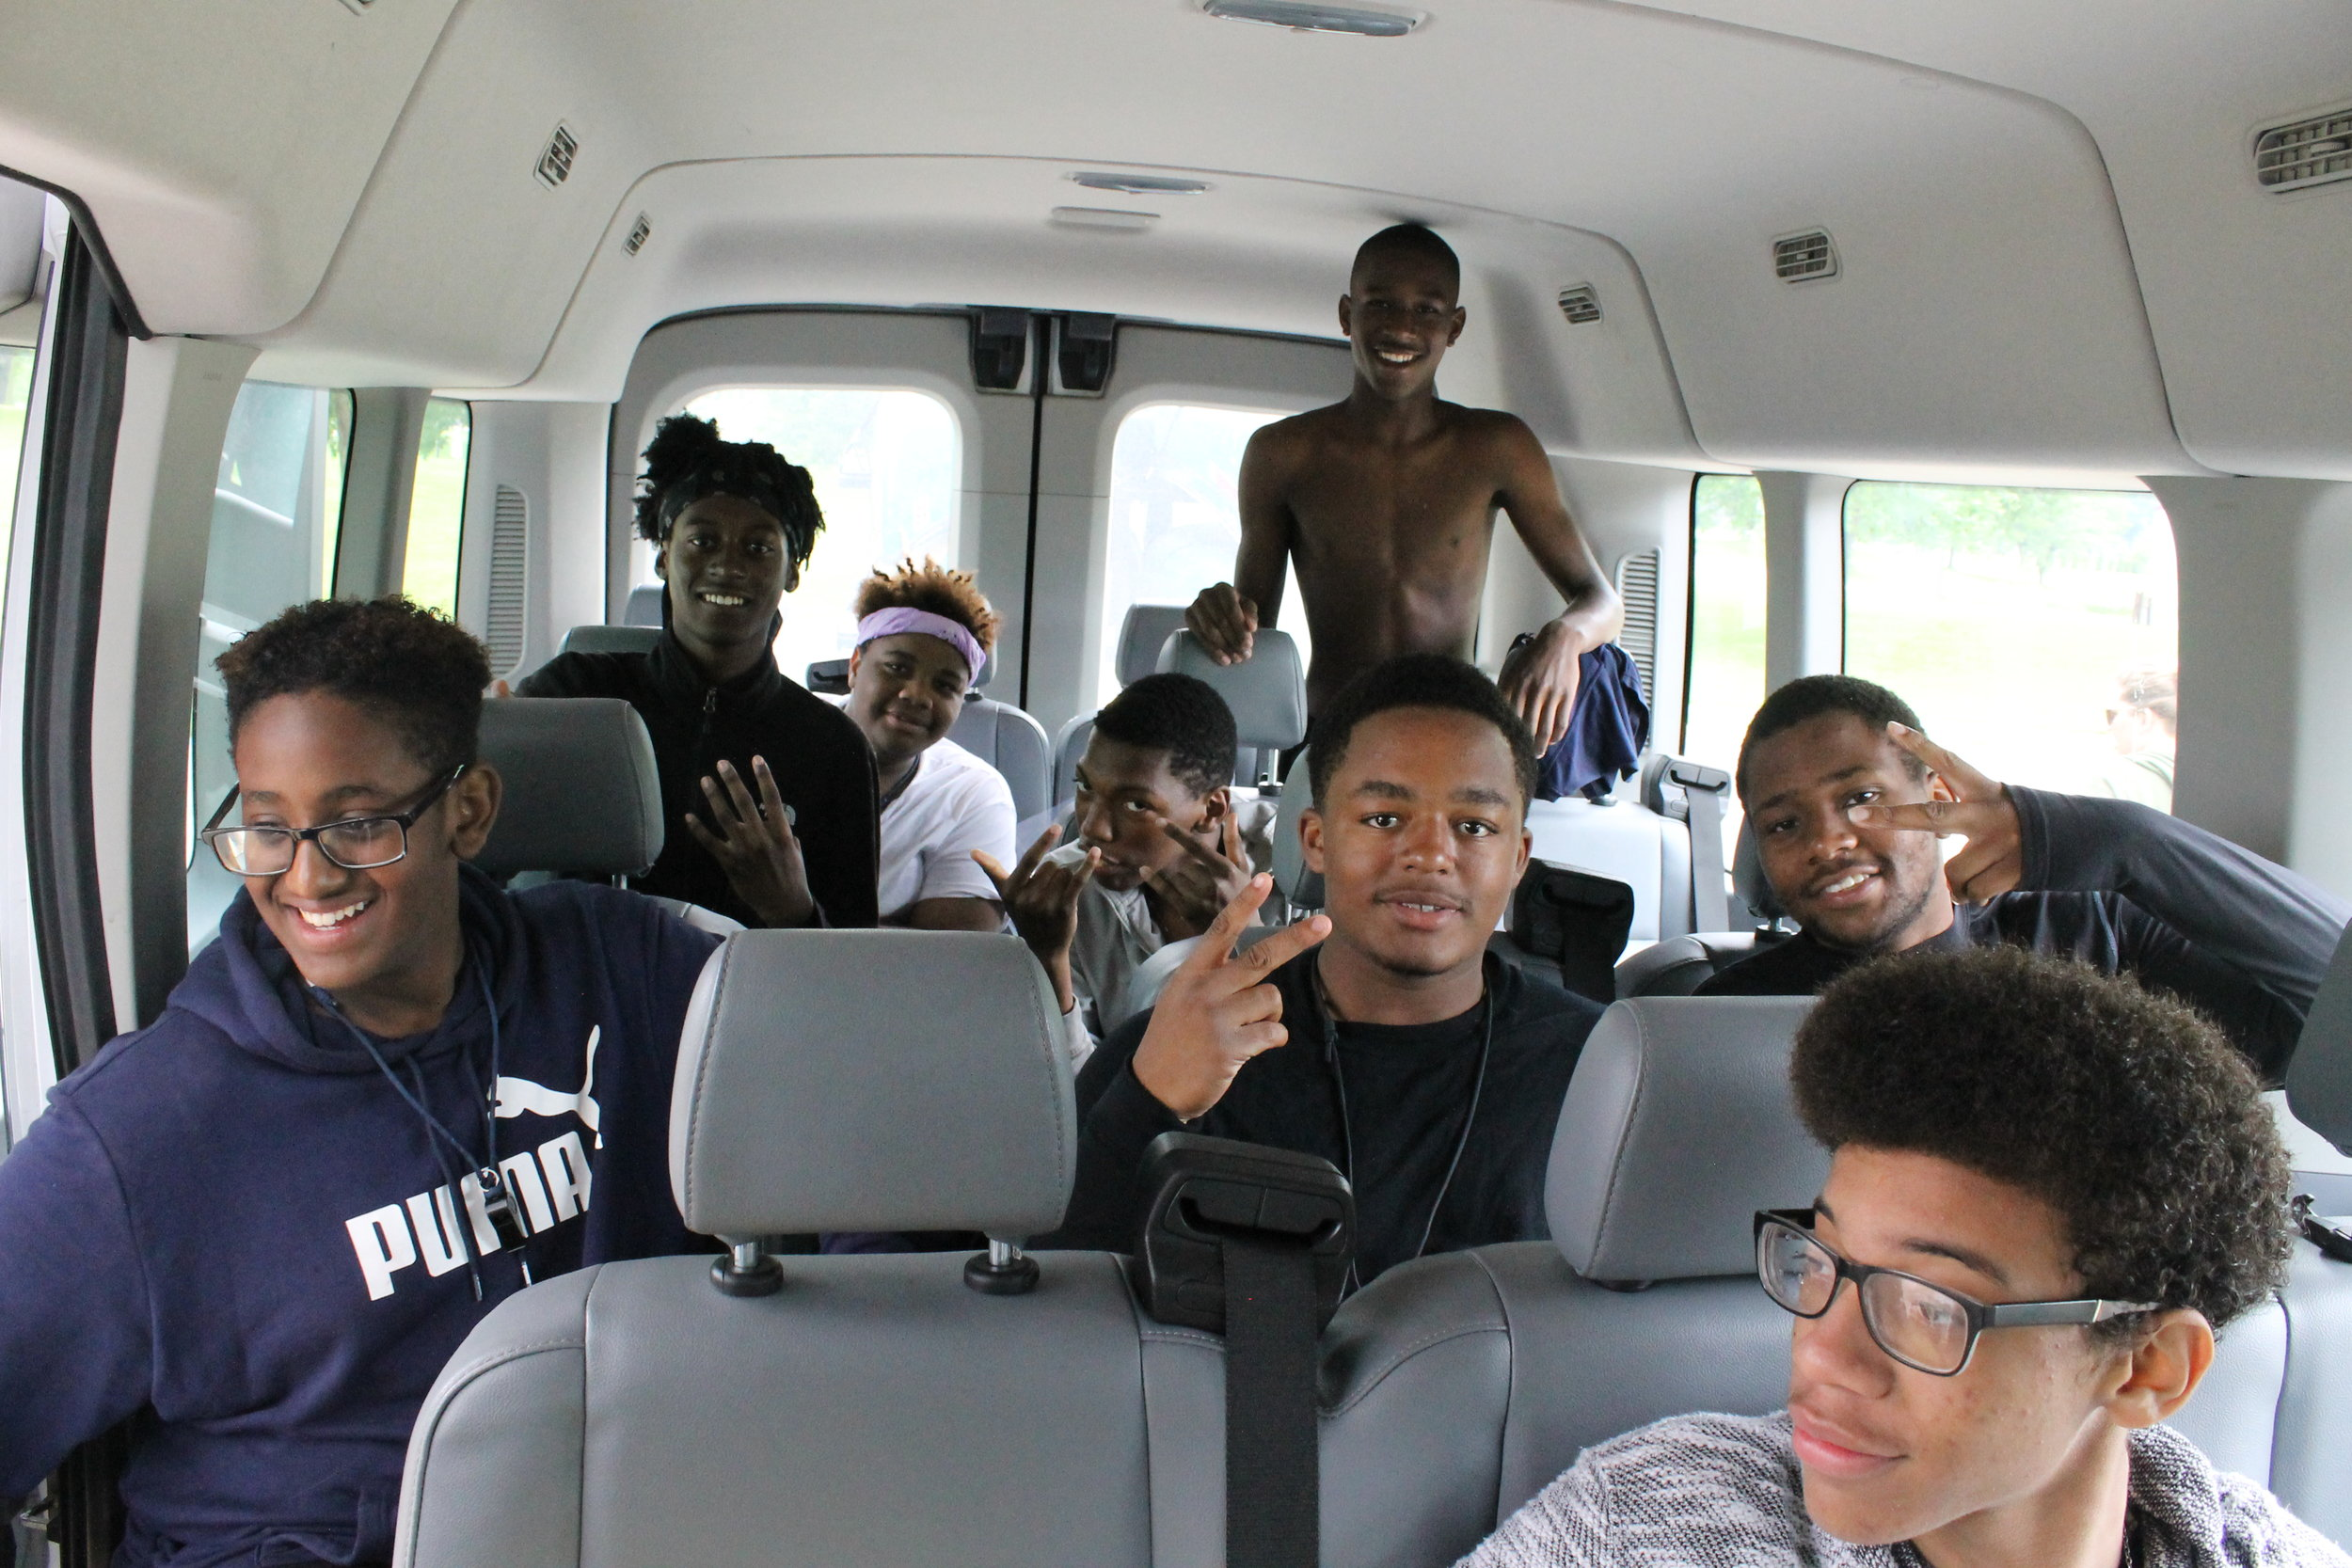 New Lens Urban MEntoring Outward Bound #NewLensSociety 20.JPG